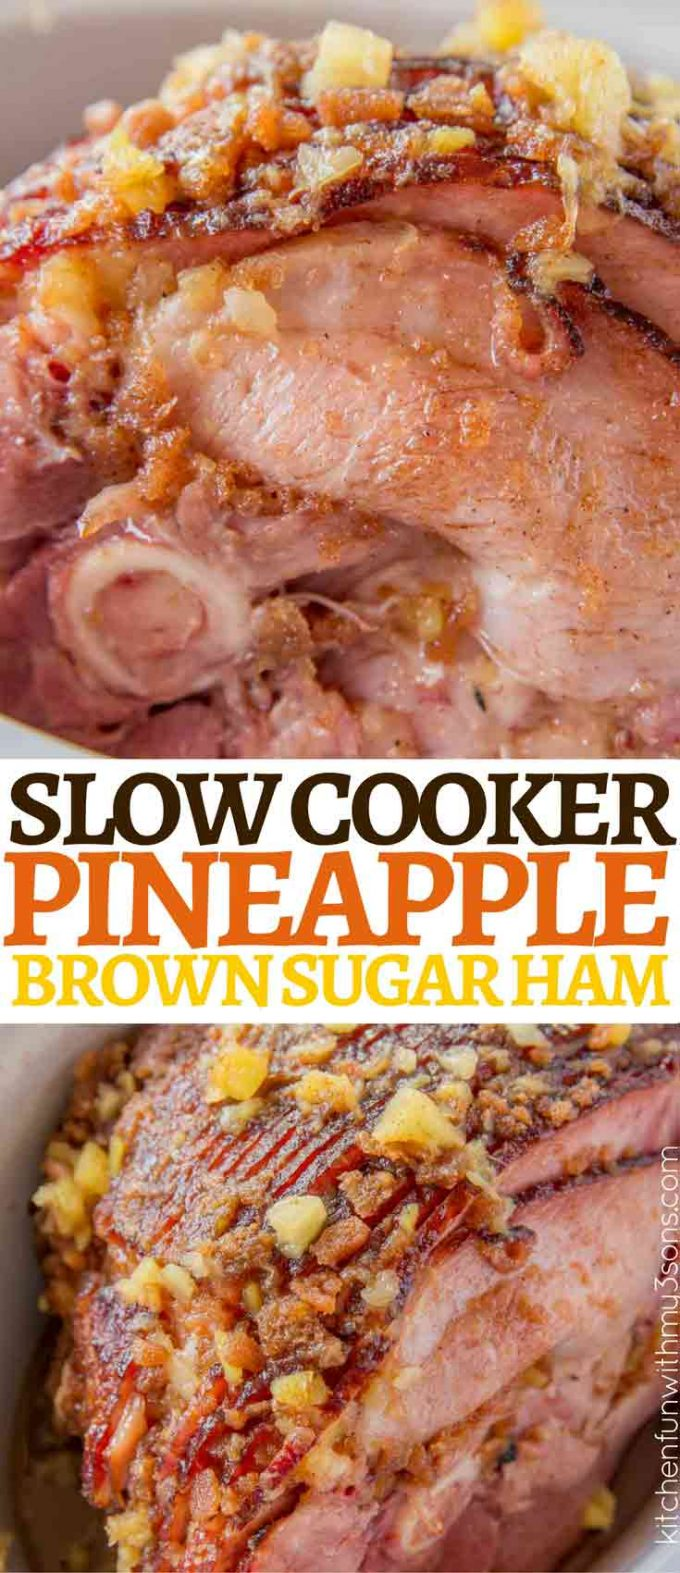 Slow Cooker Brown Sugar Pineapple Ham with a sweet and tangy topping, this is the perfectly sweet and spiced ham your family will love! And no oven space needed!